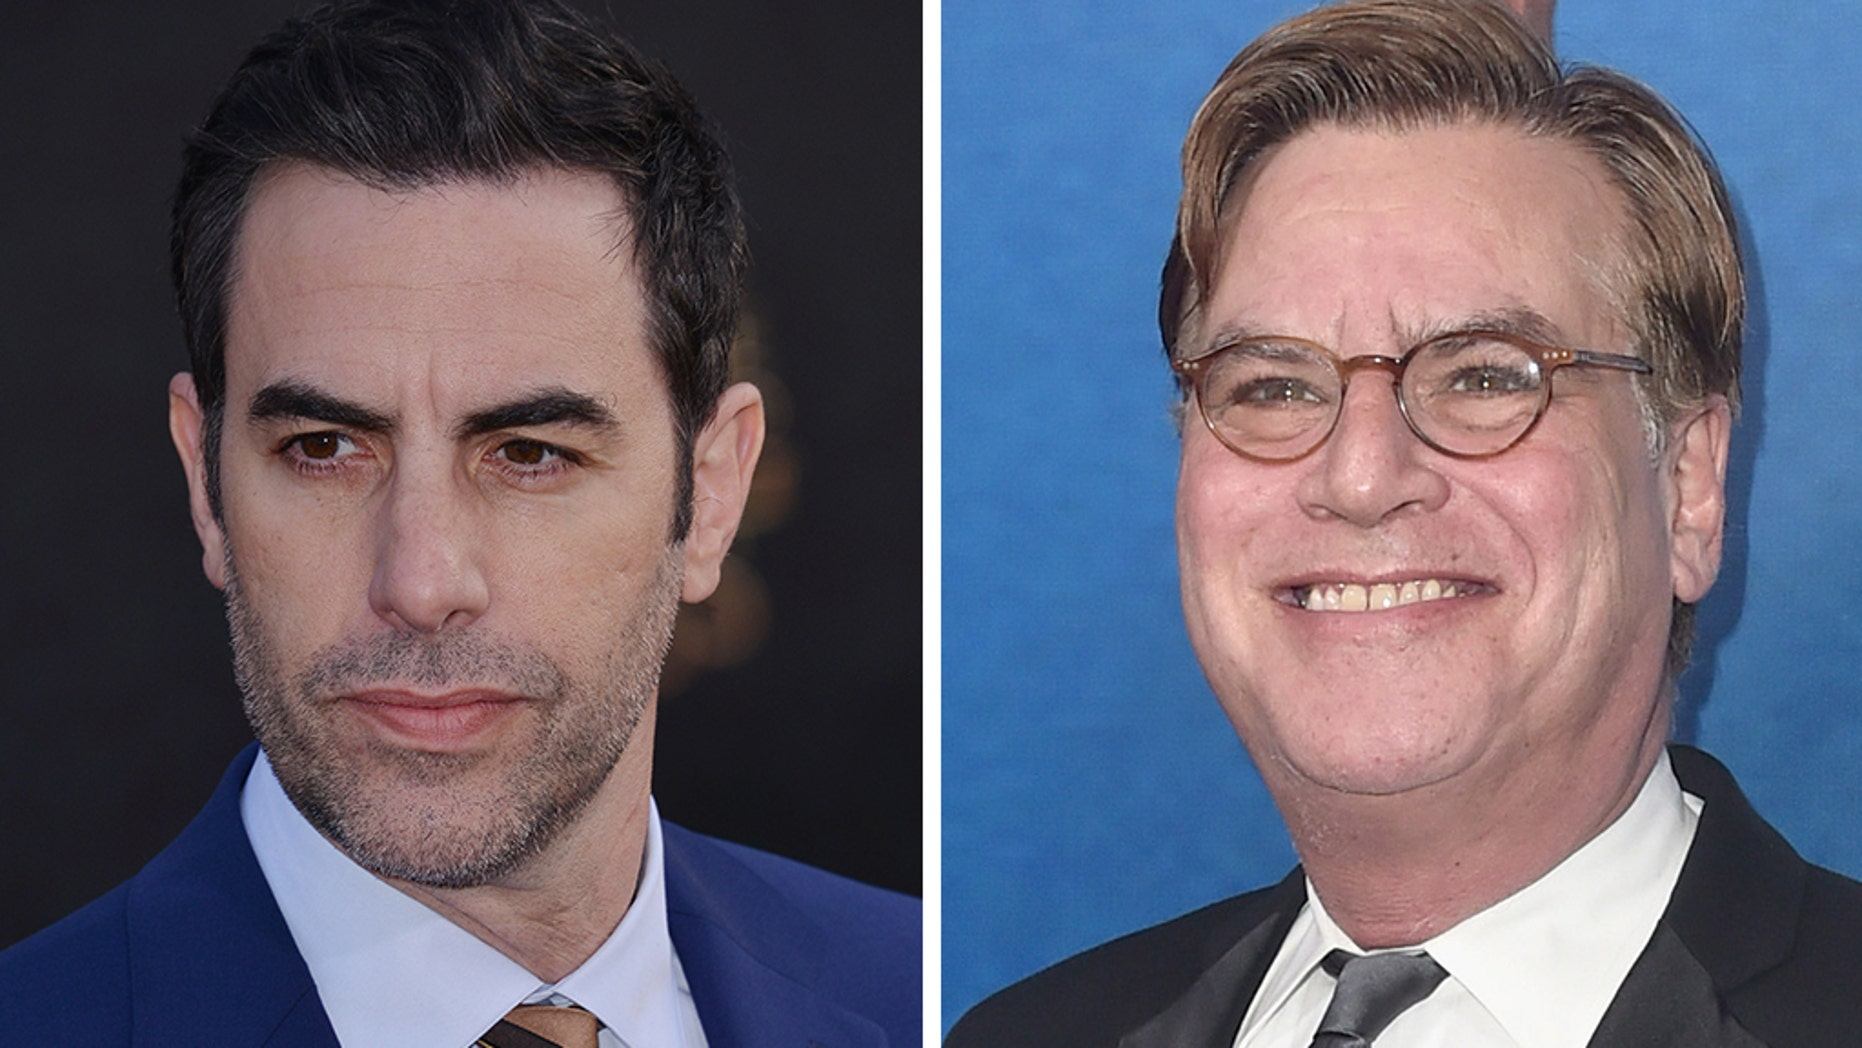 """Aaron Sorkin, right, and Sacha Baron Cohen's film """"The Trial of the Chicago 7"""" has hit another snag andwill be shelved, according to reports."""